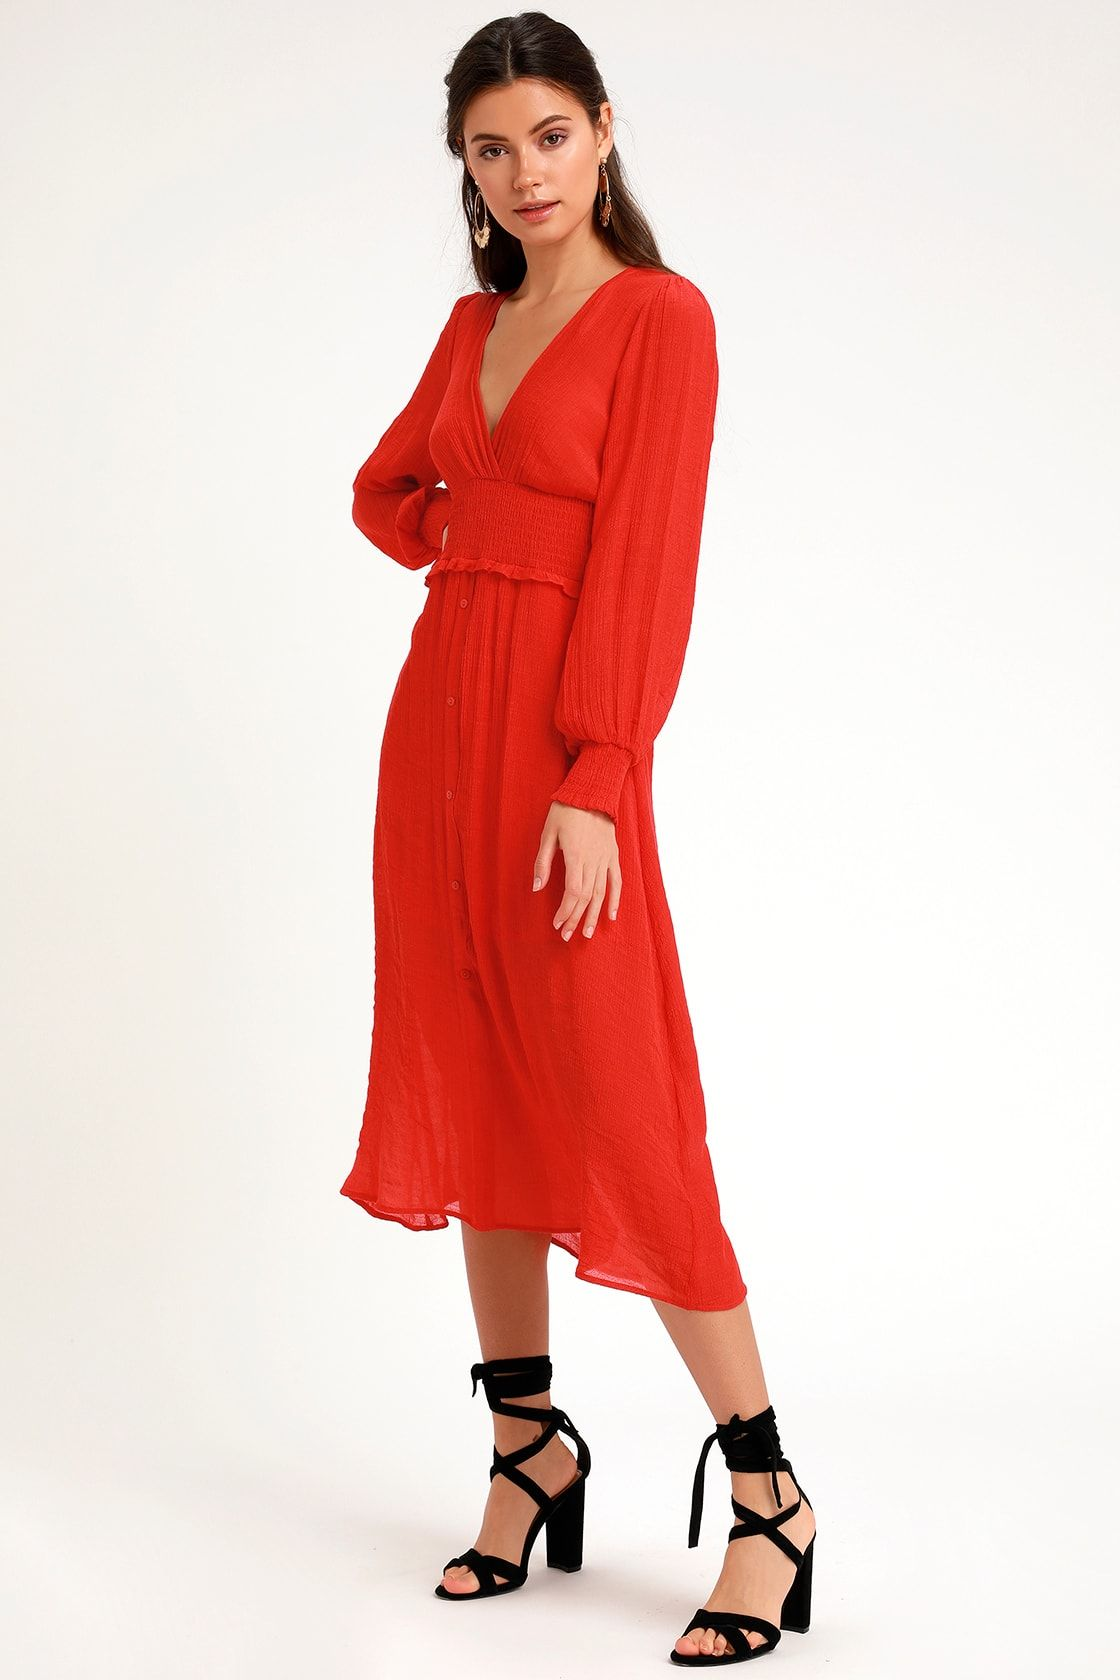 Go For It Red Long Sleeve Midi Dress Red Long Sleeve Midi Dress Long Red Dress Long Sleeve Midi Dress [ 1680 x 1120 Pixel ]